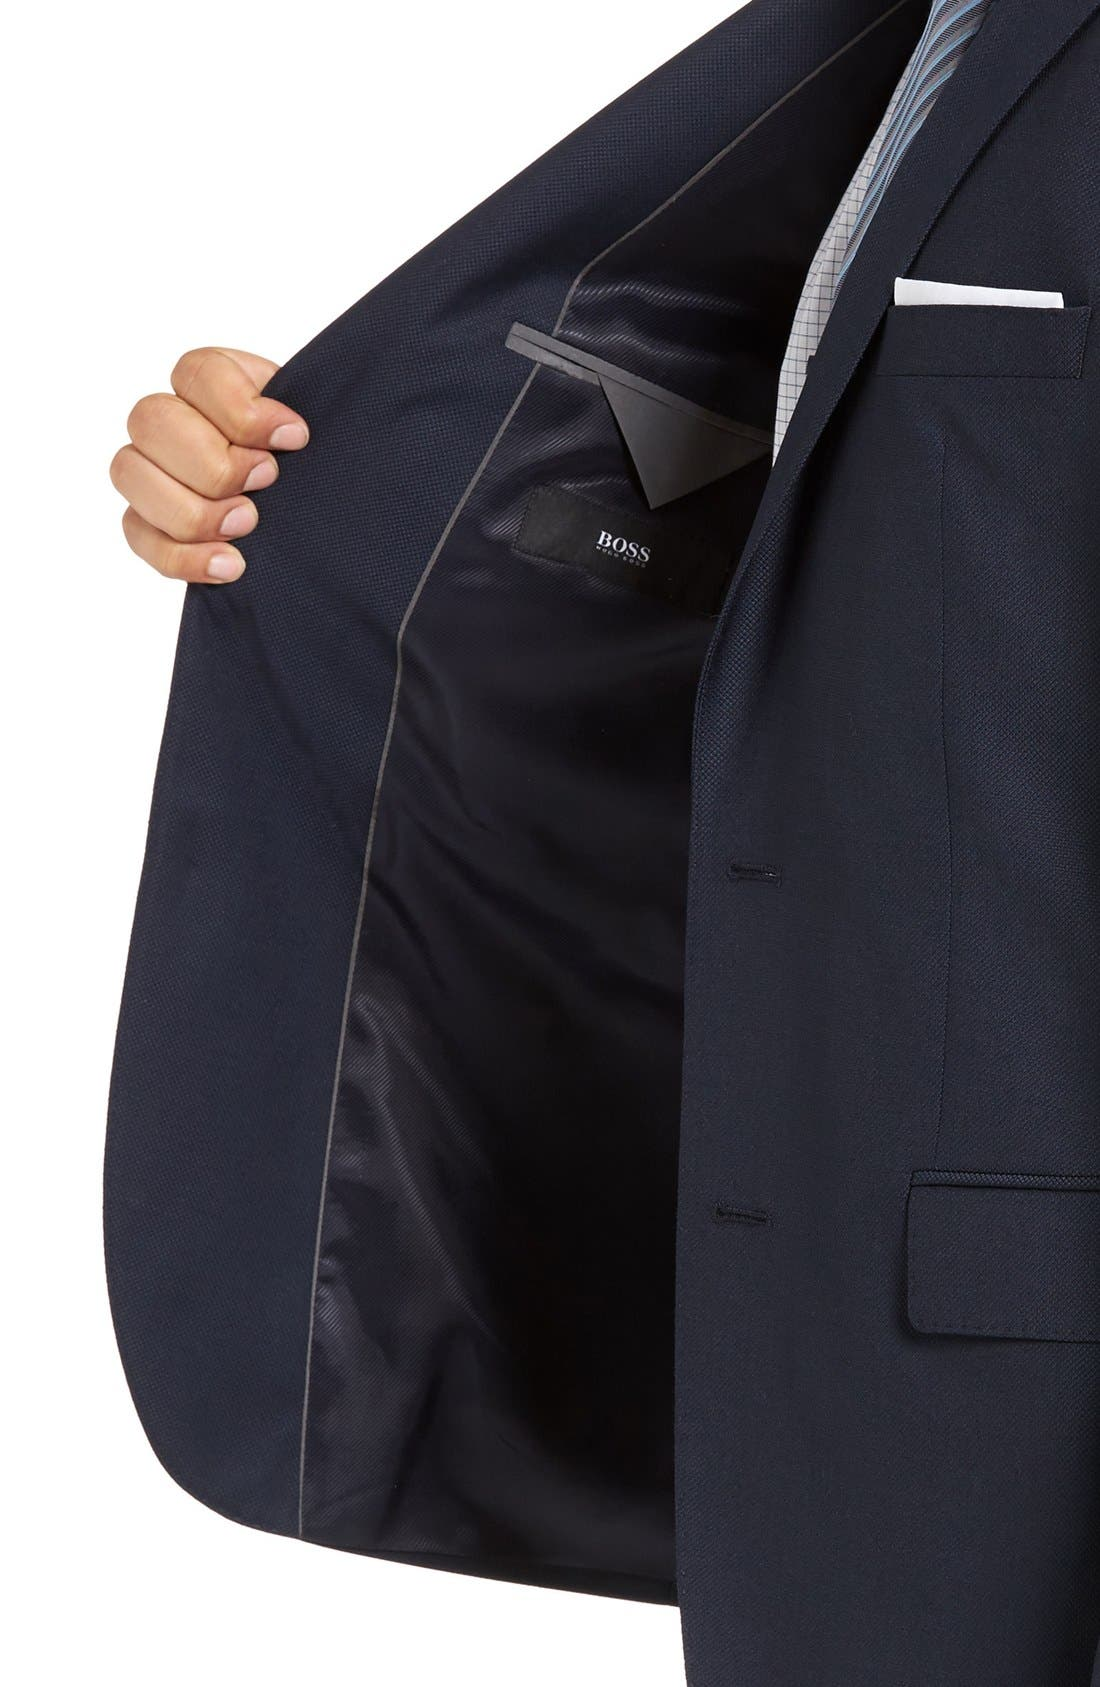 James Classic Fit Wool Blazer,                             Alternate thumbnail 4, color,                             Navy